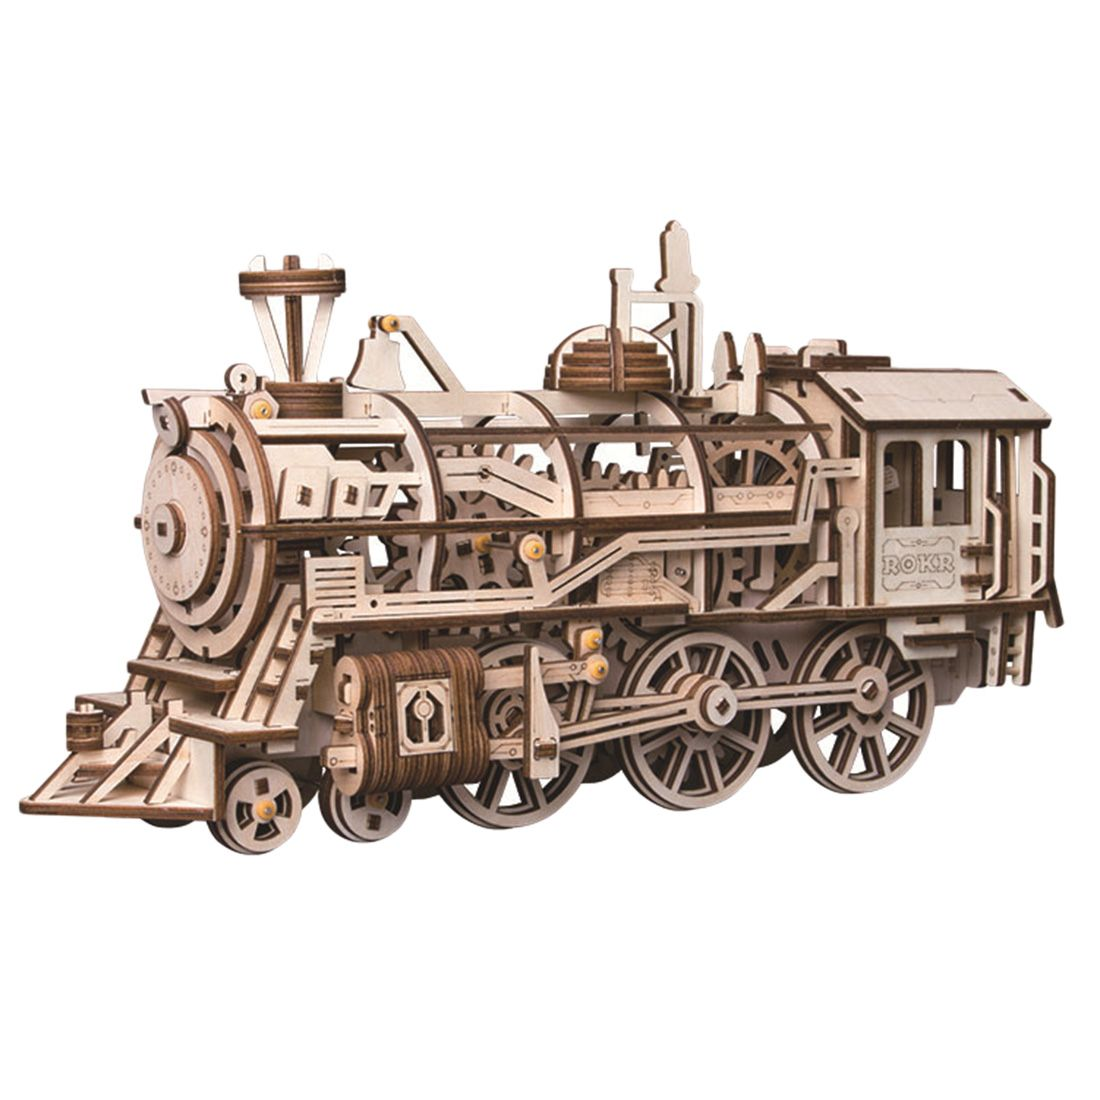 Hot Popular Creative Mechanical Gears 3D Wooden Puzzle For Children Movement Assembled Locomotive Steam Stem Gift Toys Drop Ship